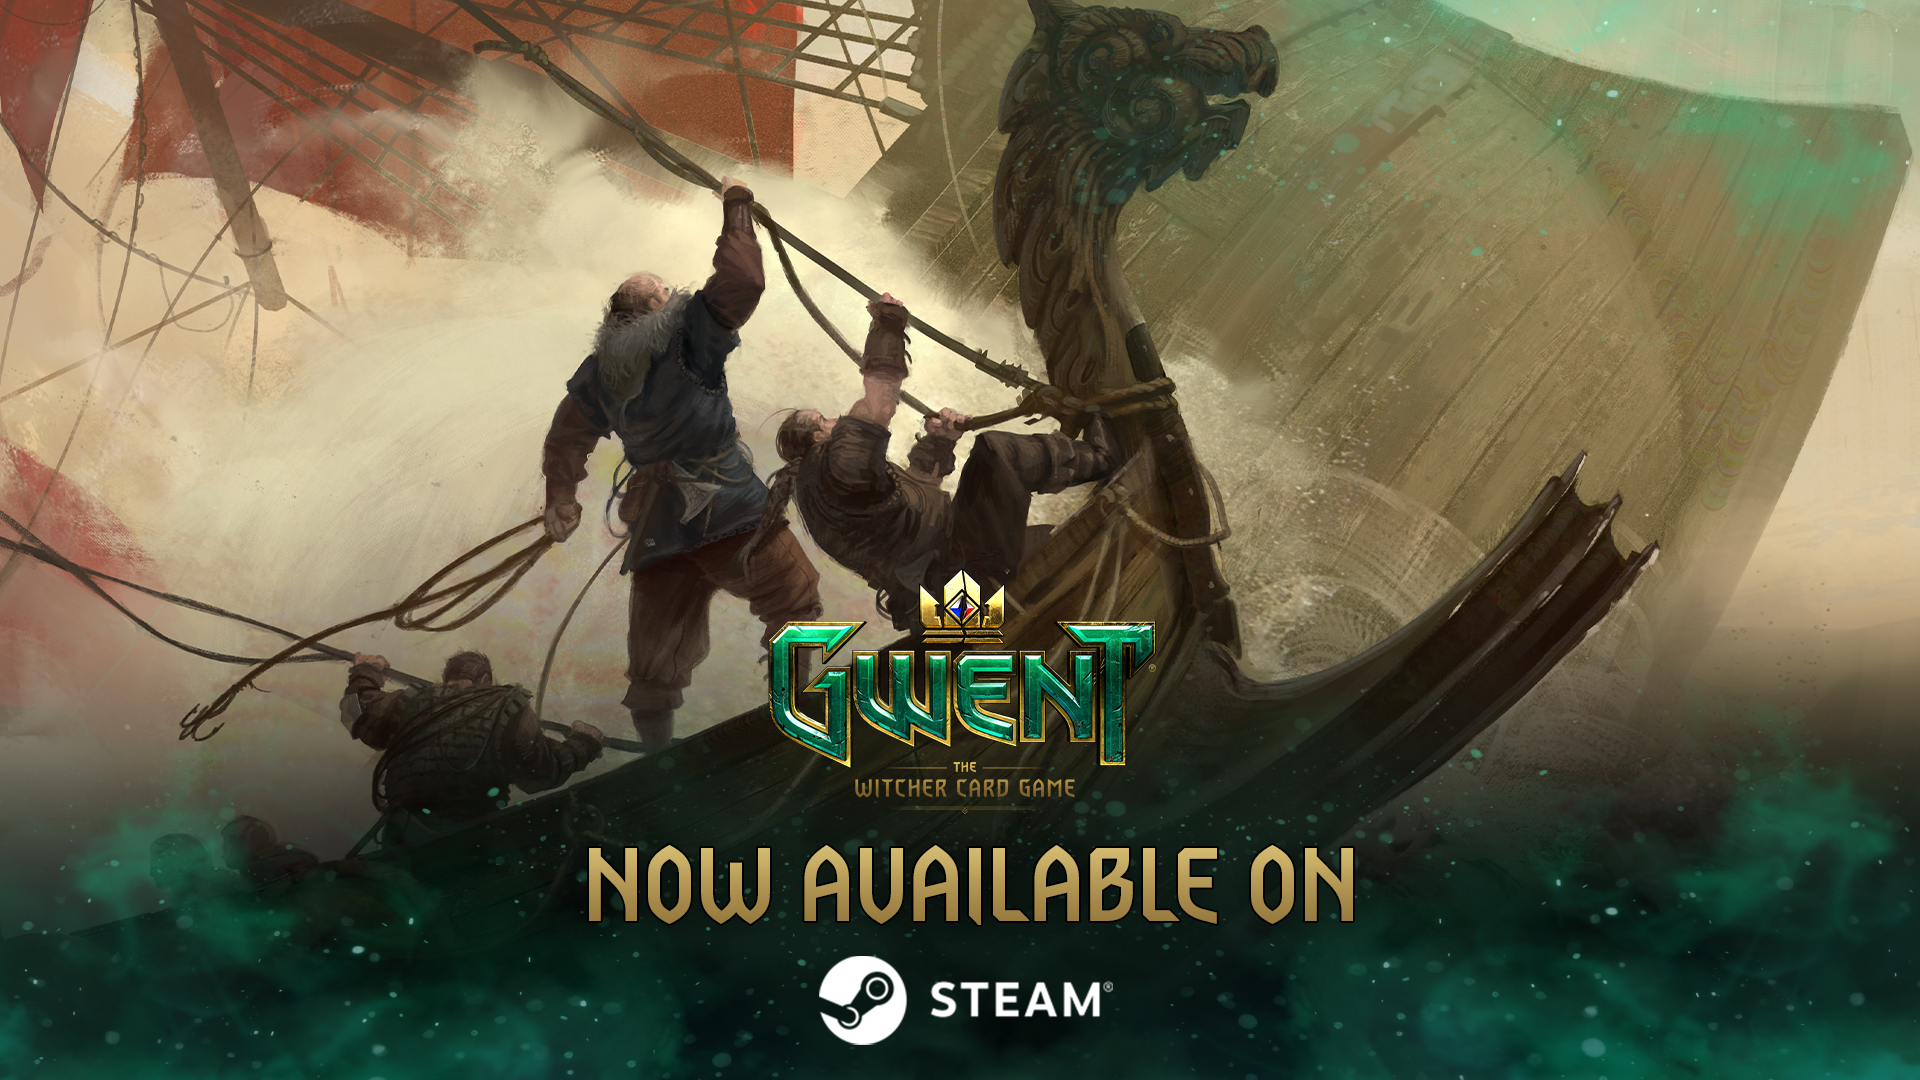 GWENT is now available on Steam!